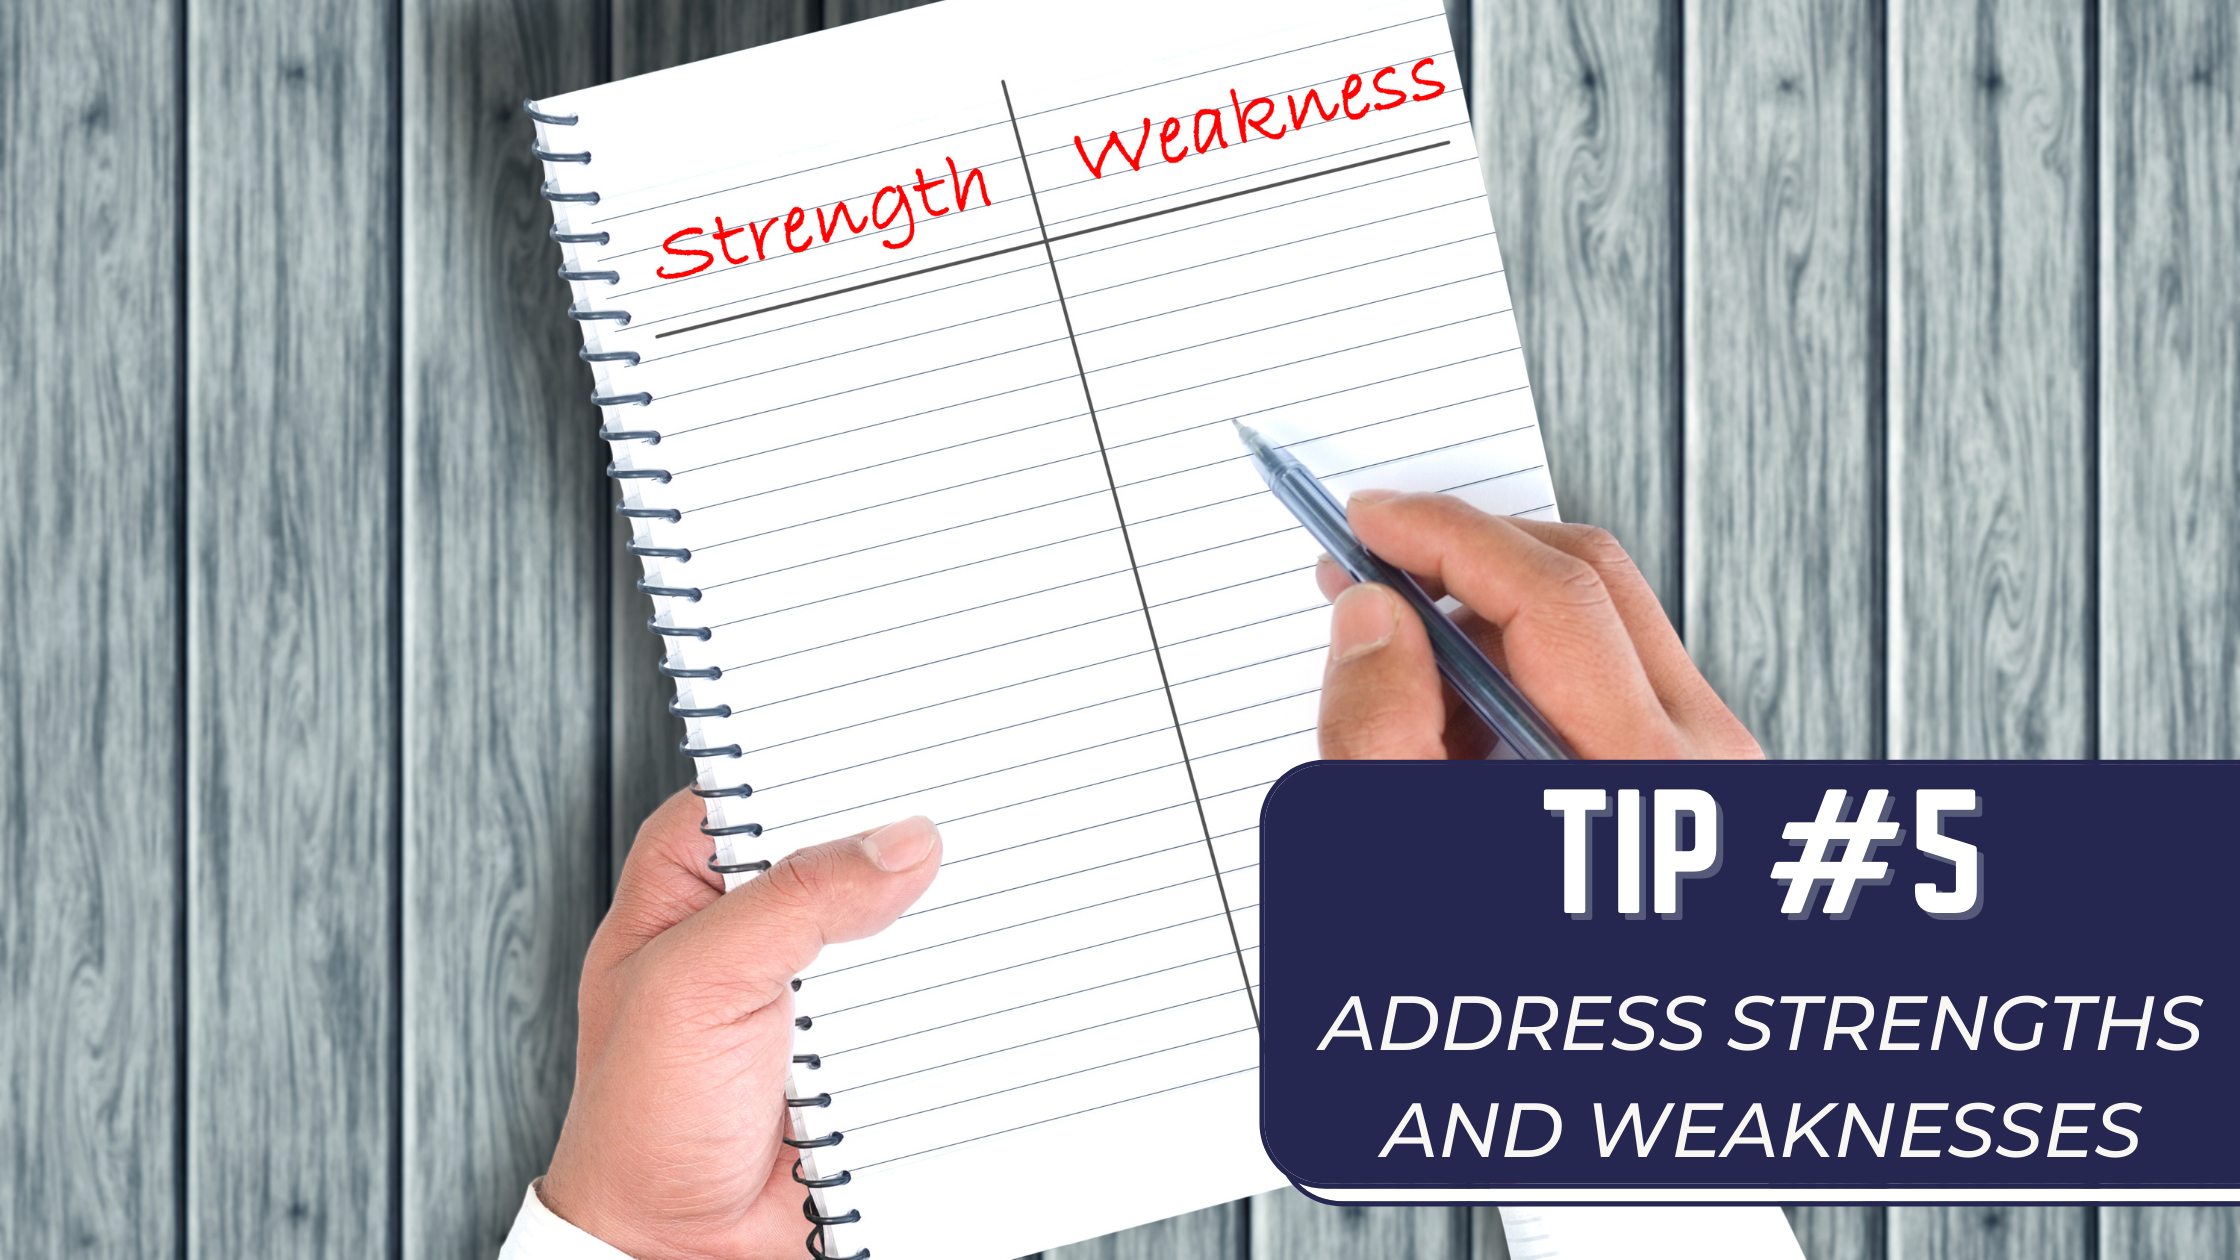 address strength and weaknesses